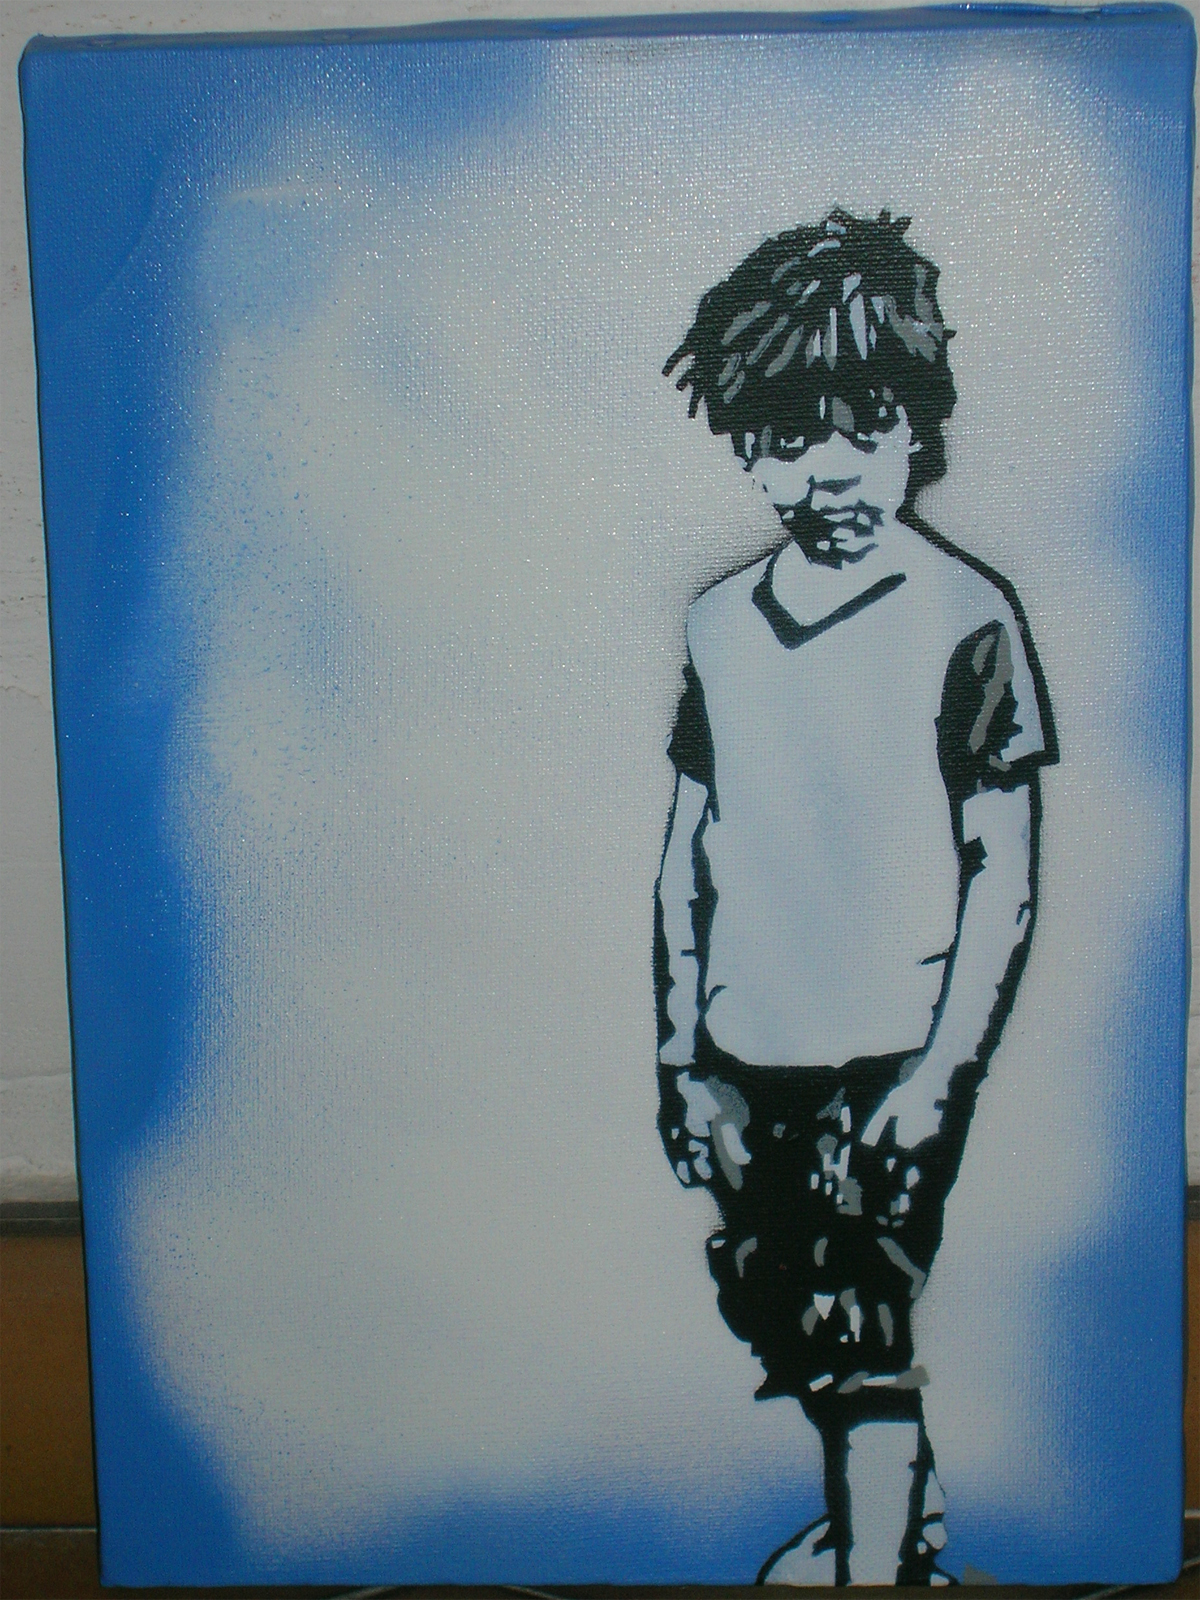 stencil graffiti of a young child